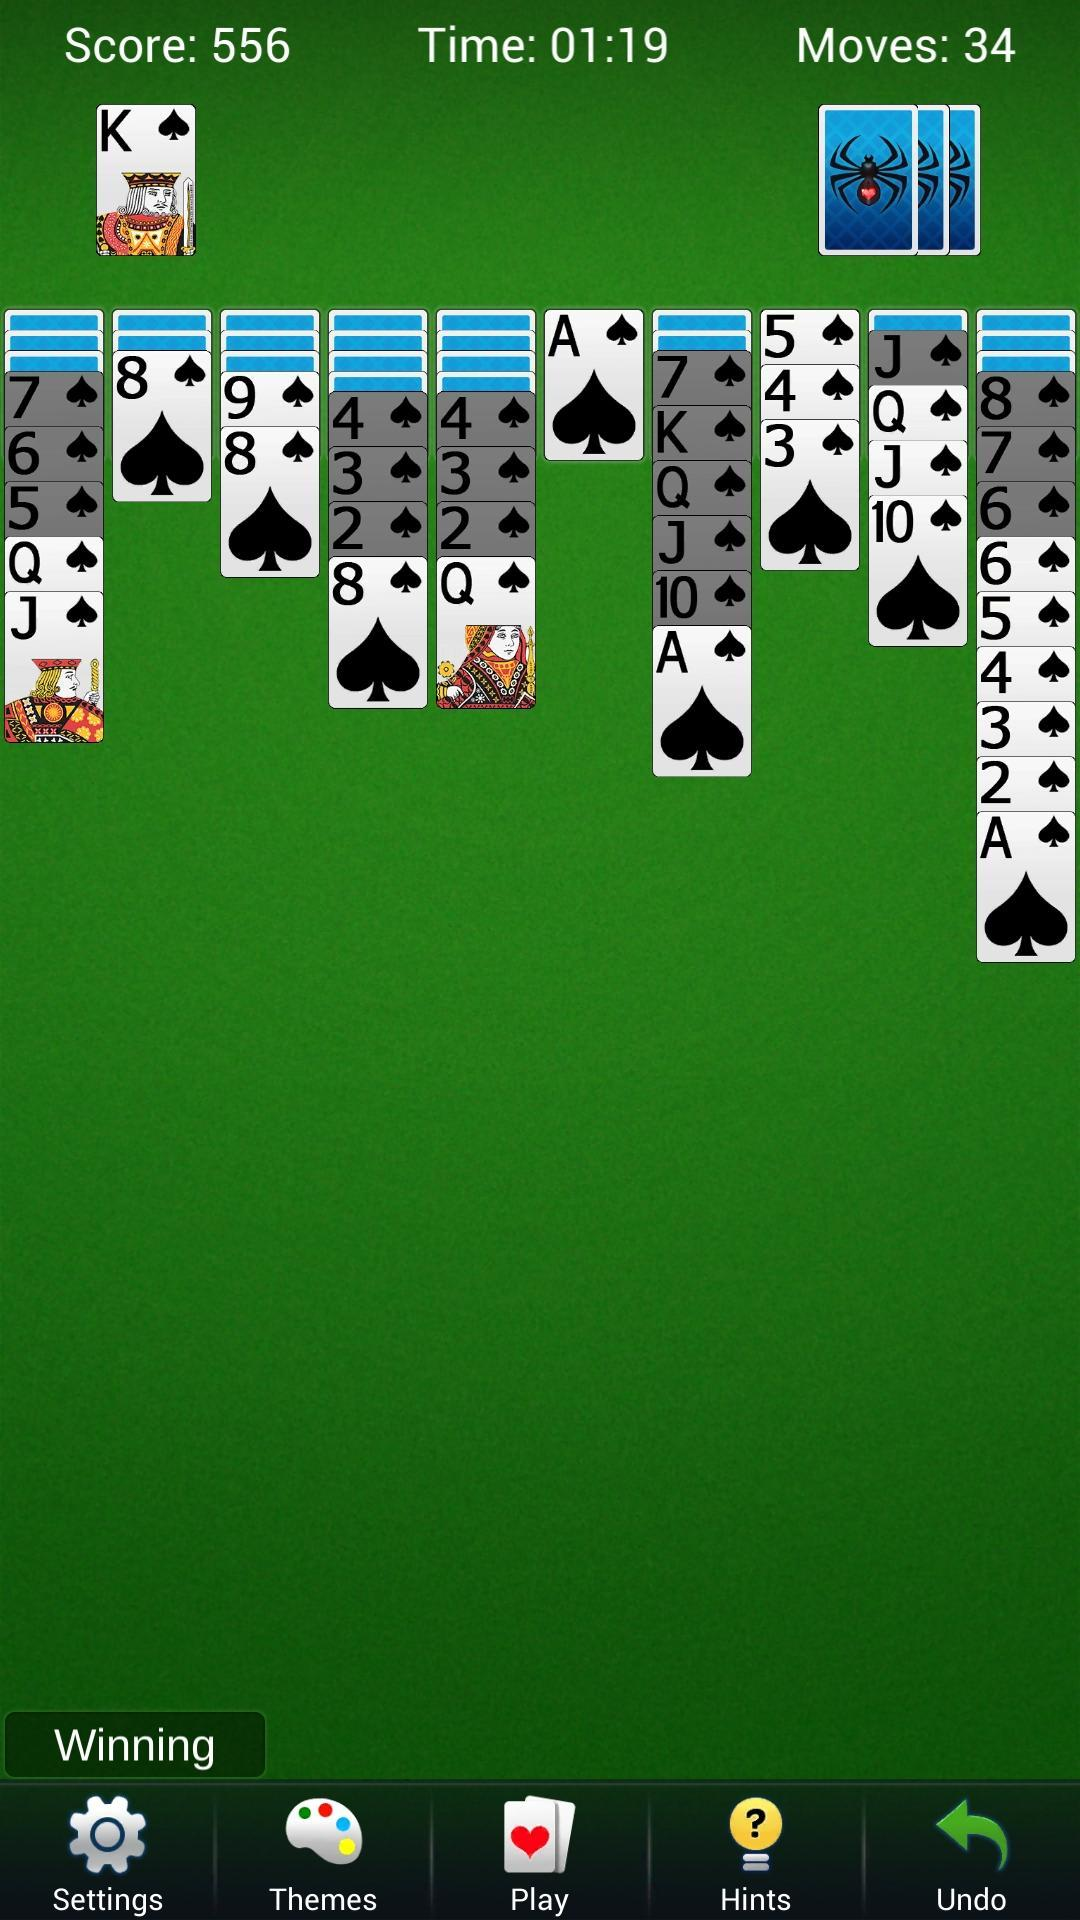 Spider Solitaire - Best Classic Card Games 1.8.0.20210225 Screenshot 6